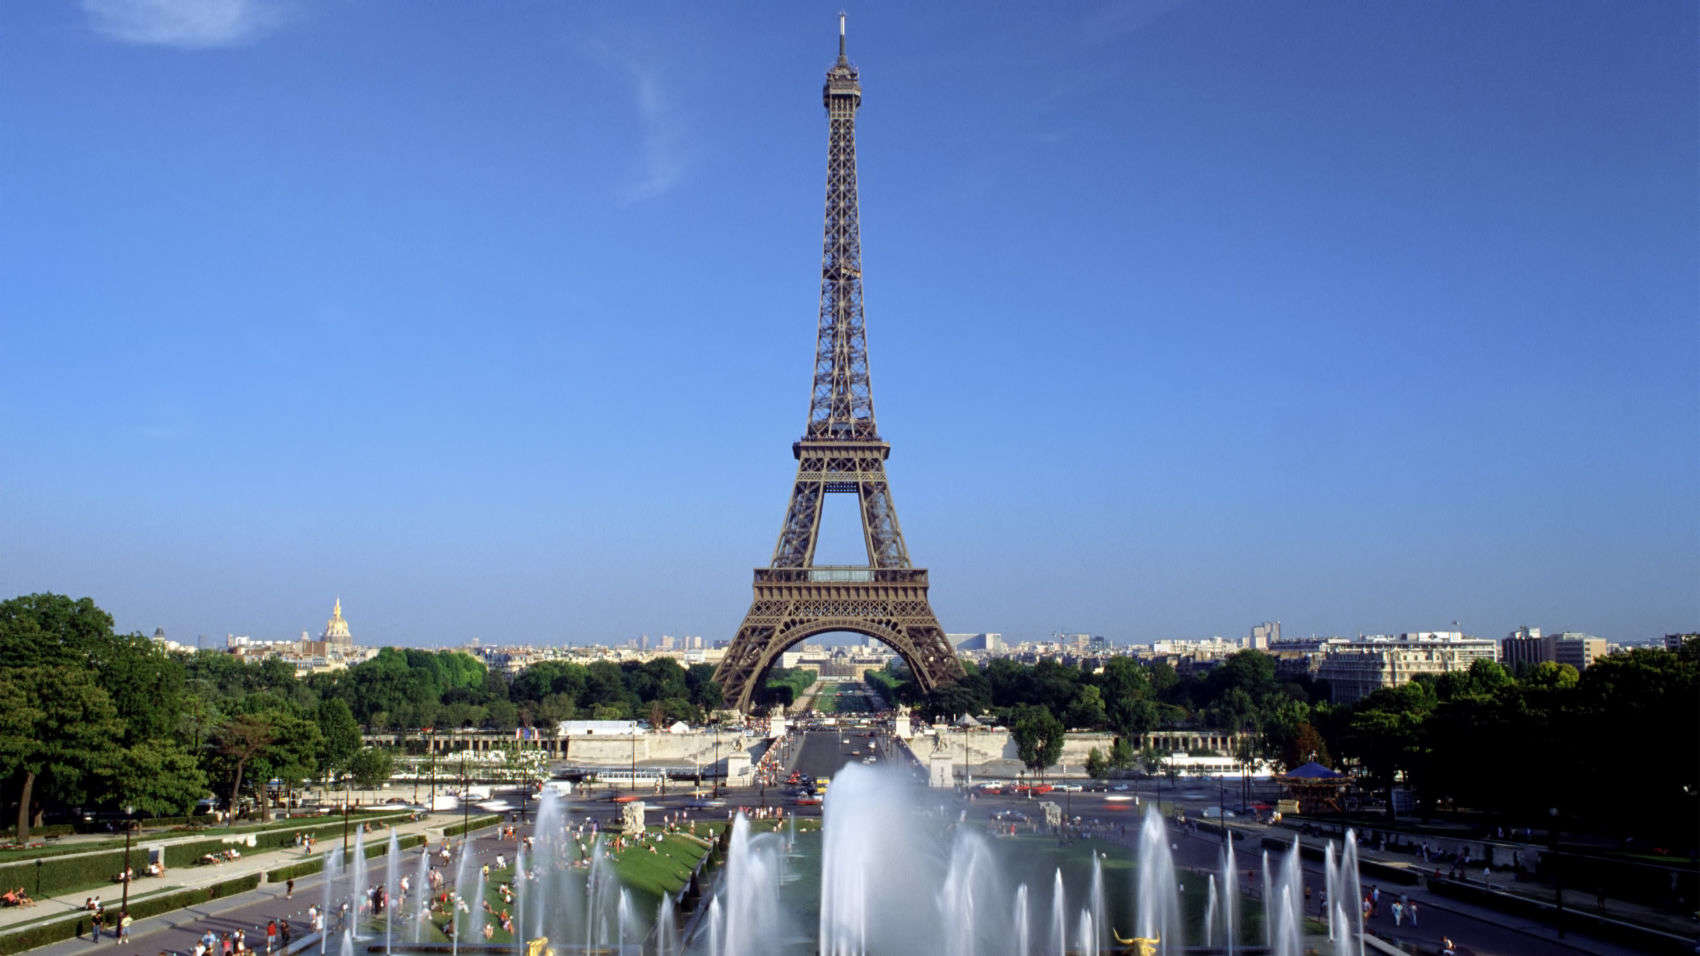 Cheap hotels rooms in paris france near eiffel tower for Hotels near effiel tower